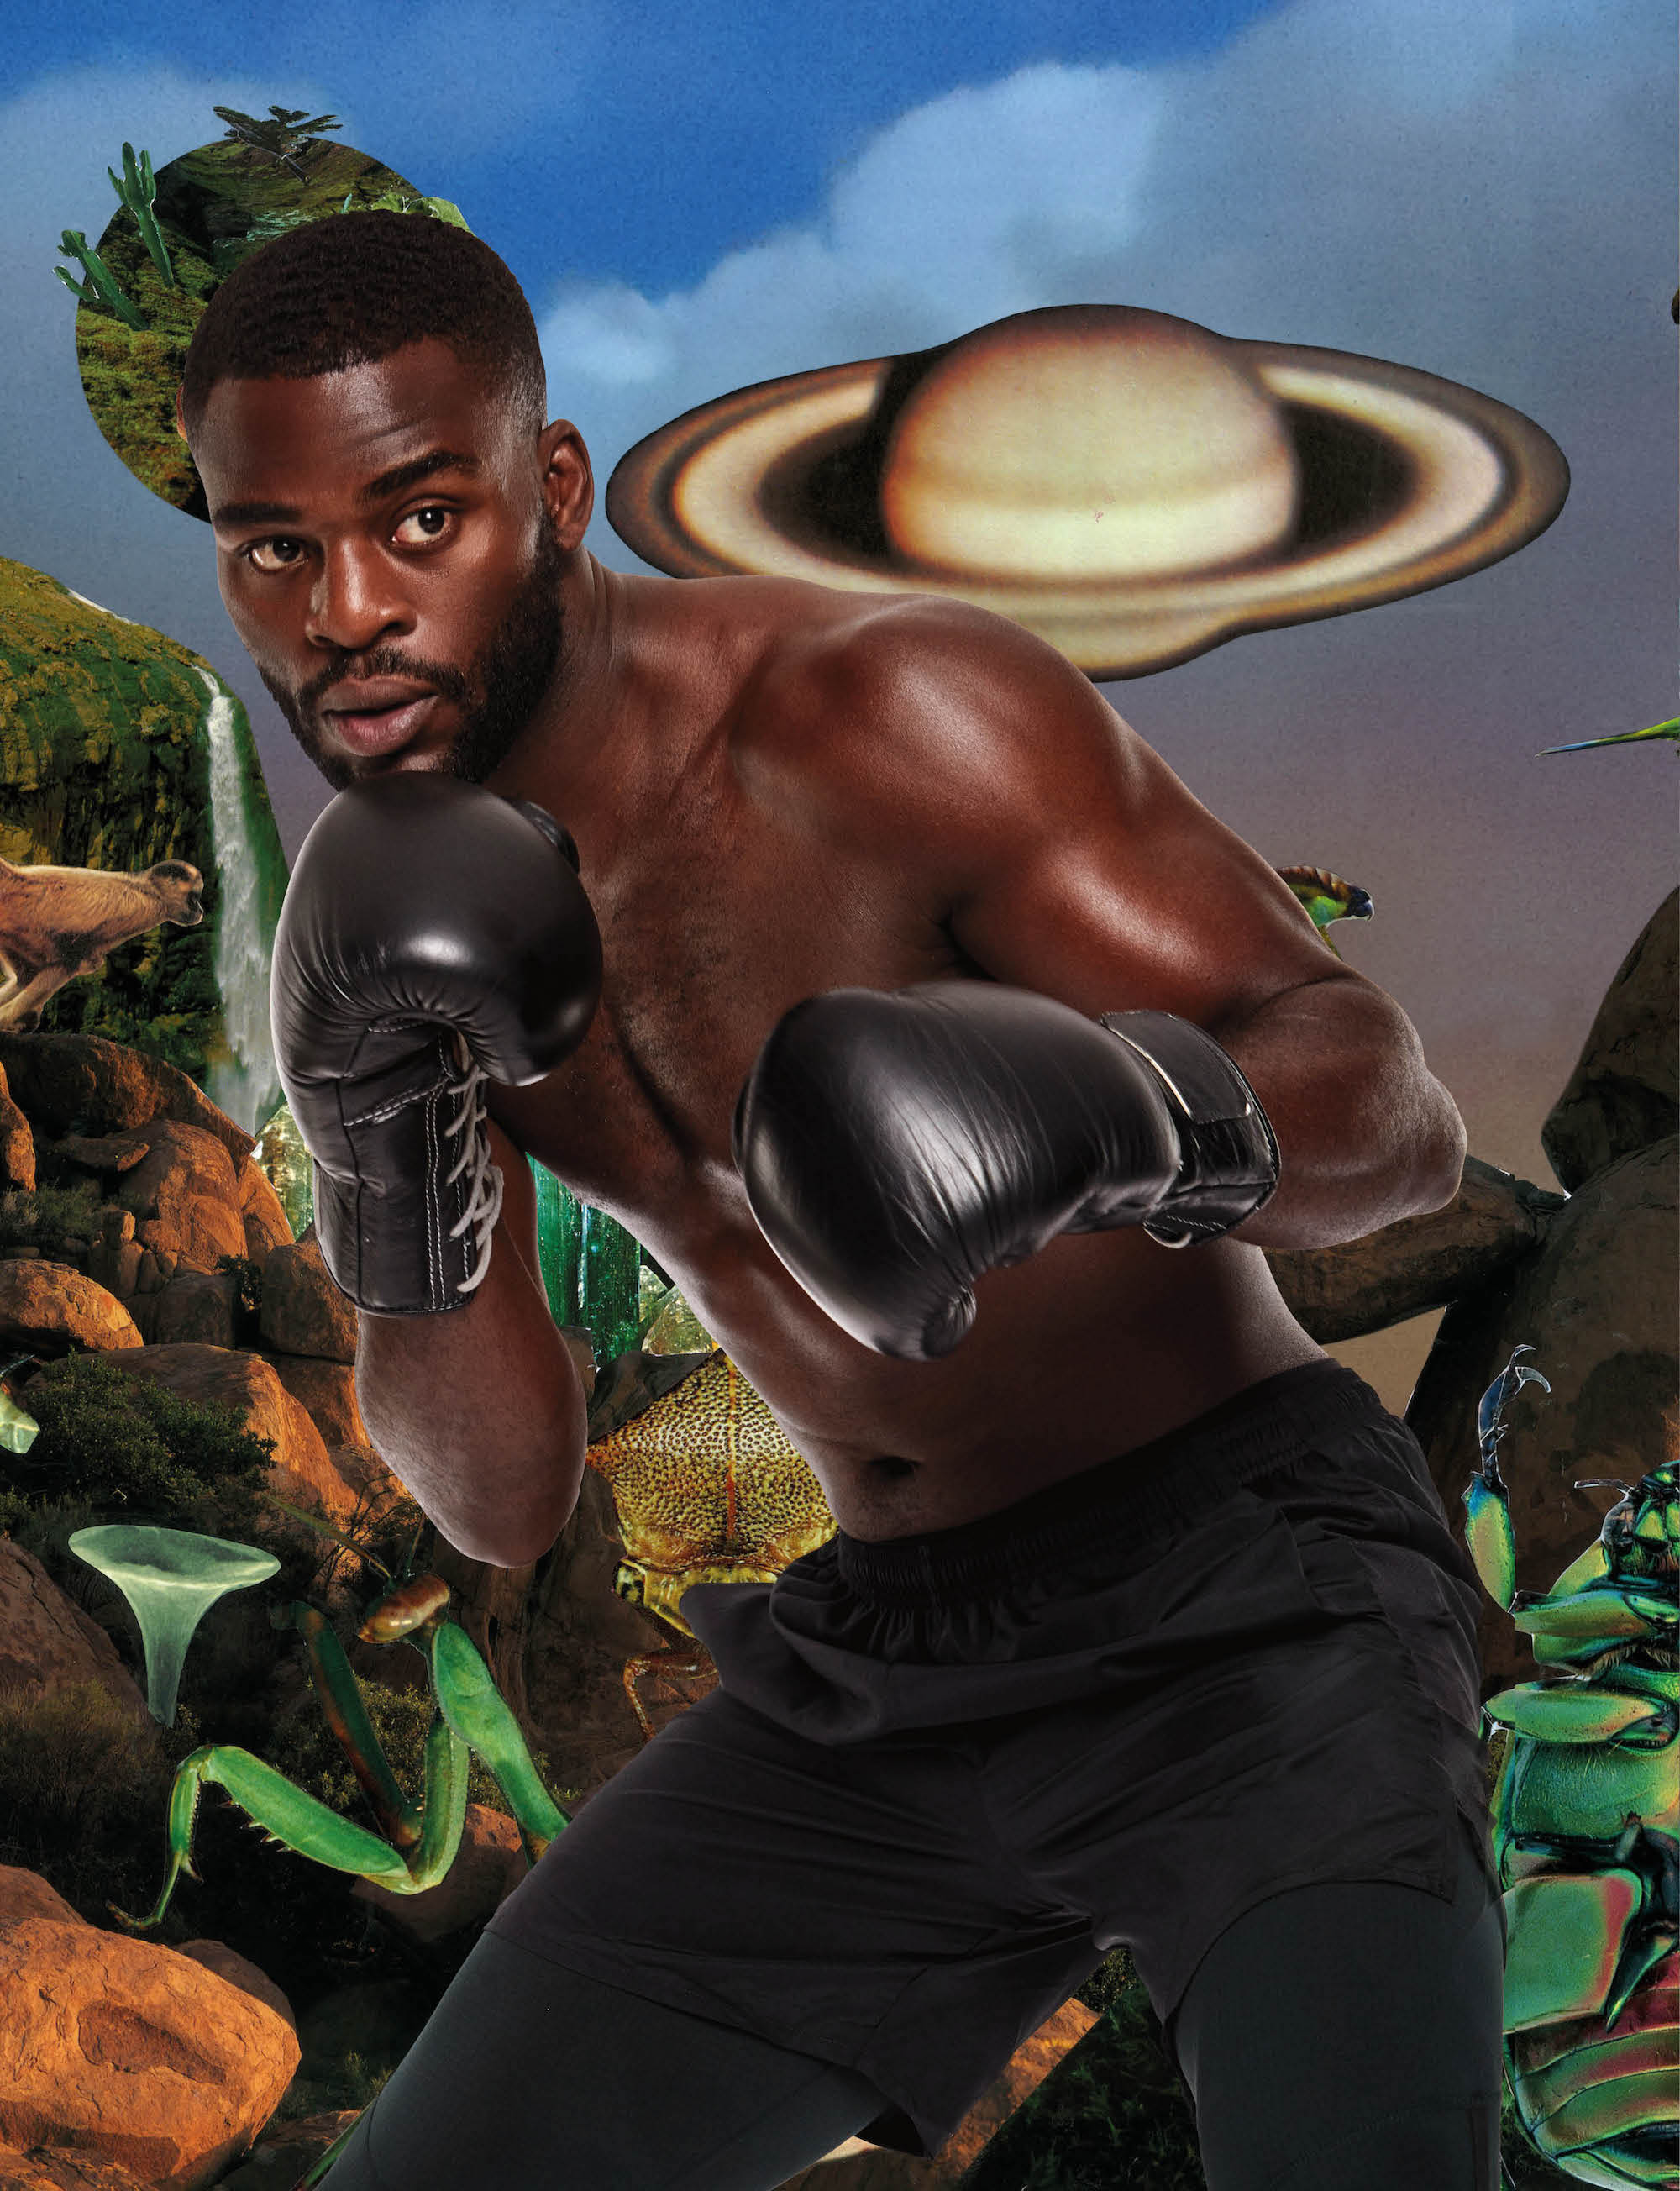 Nike approved boxer Joshua Buatsi from Spring 19 issue of Wonderland topless